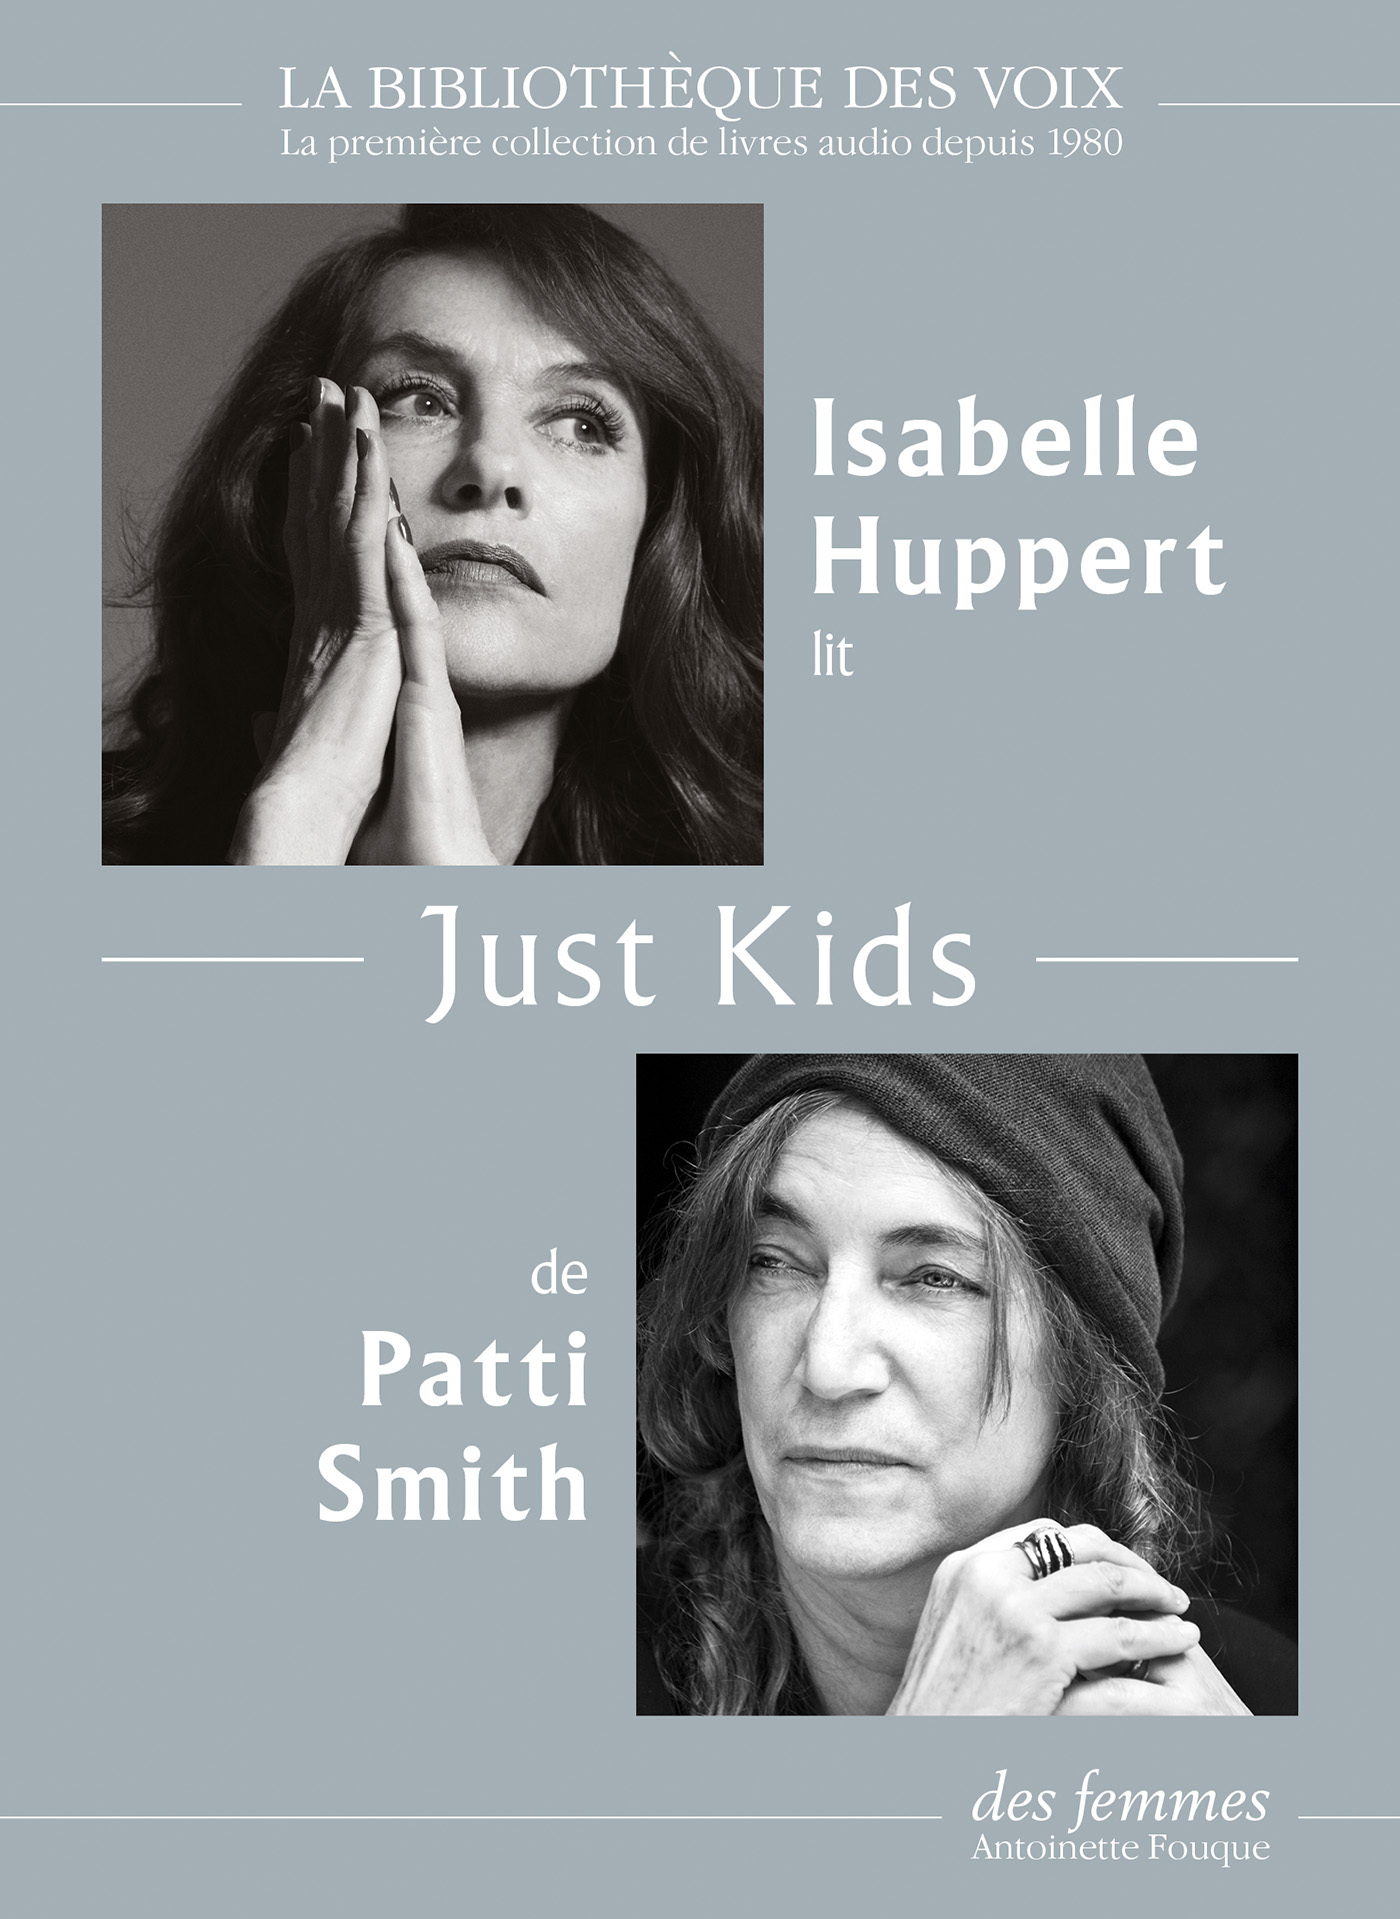 JUST KIDS - LU PAR ISABELLE HUPPERT